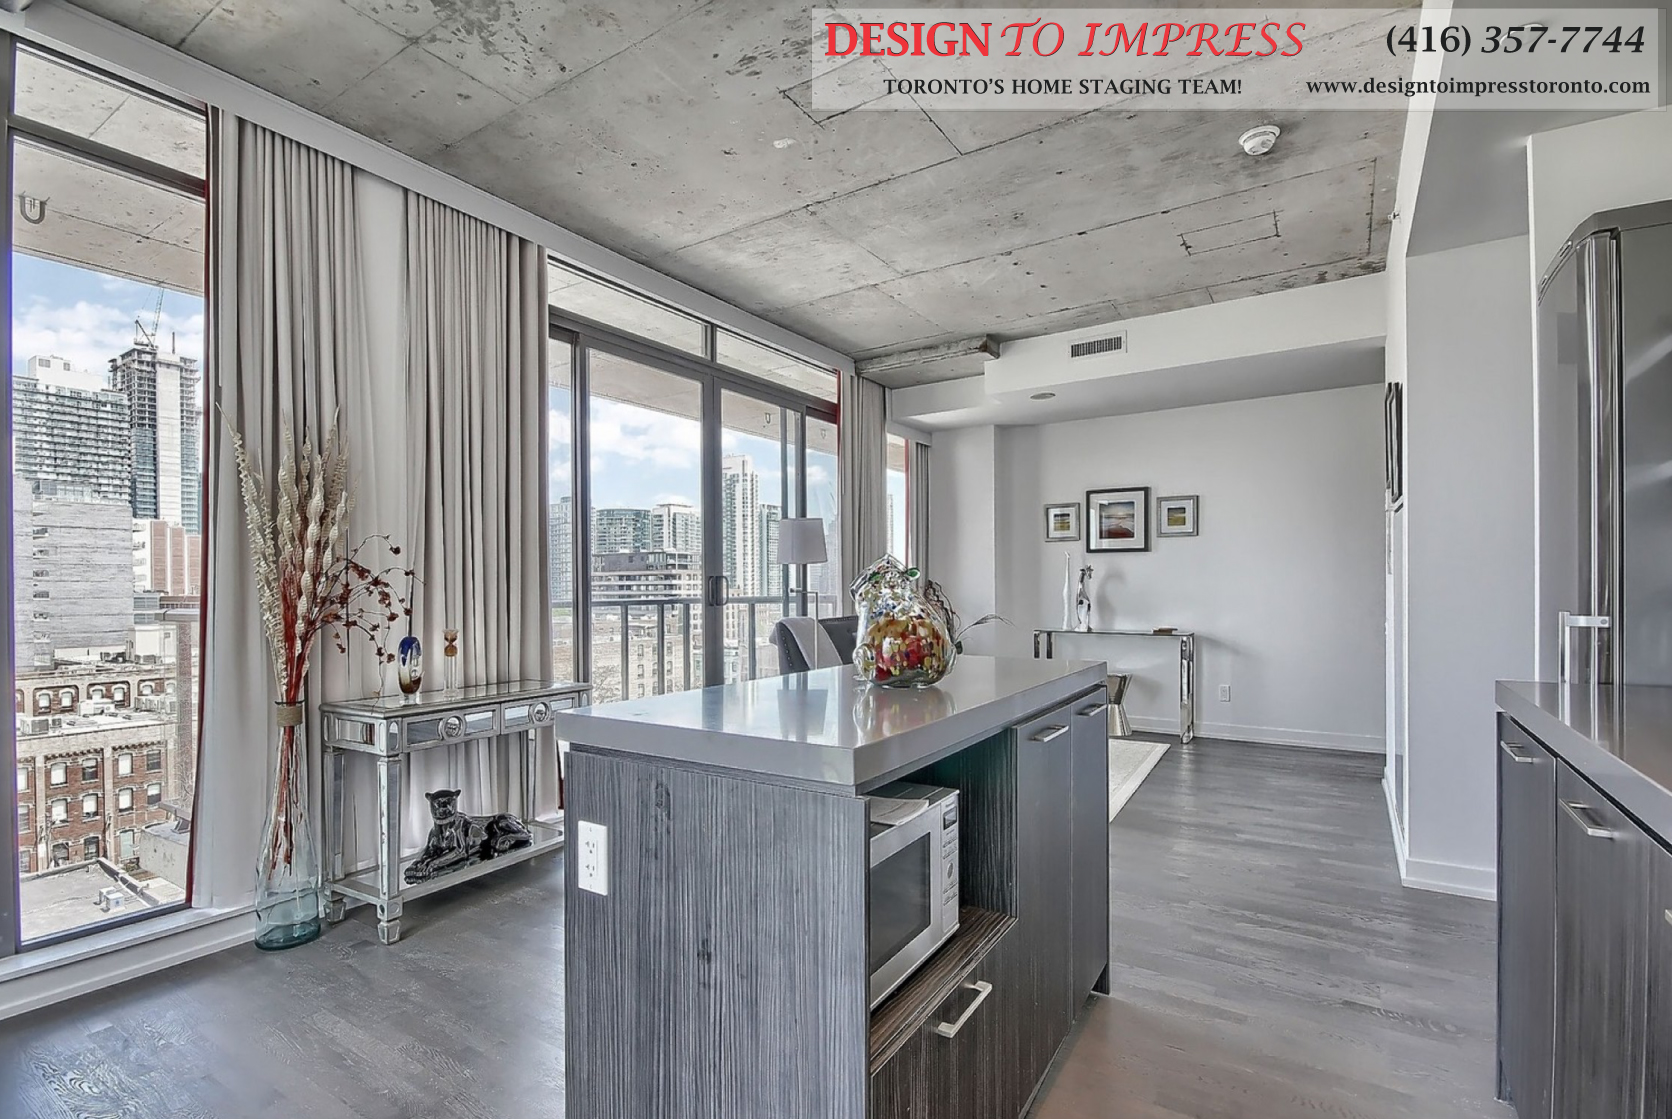 Kitchen Balcony View, 560 King St. West, Toronto Condo Staging